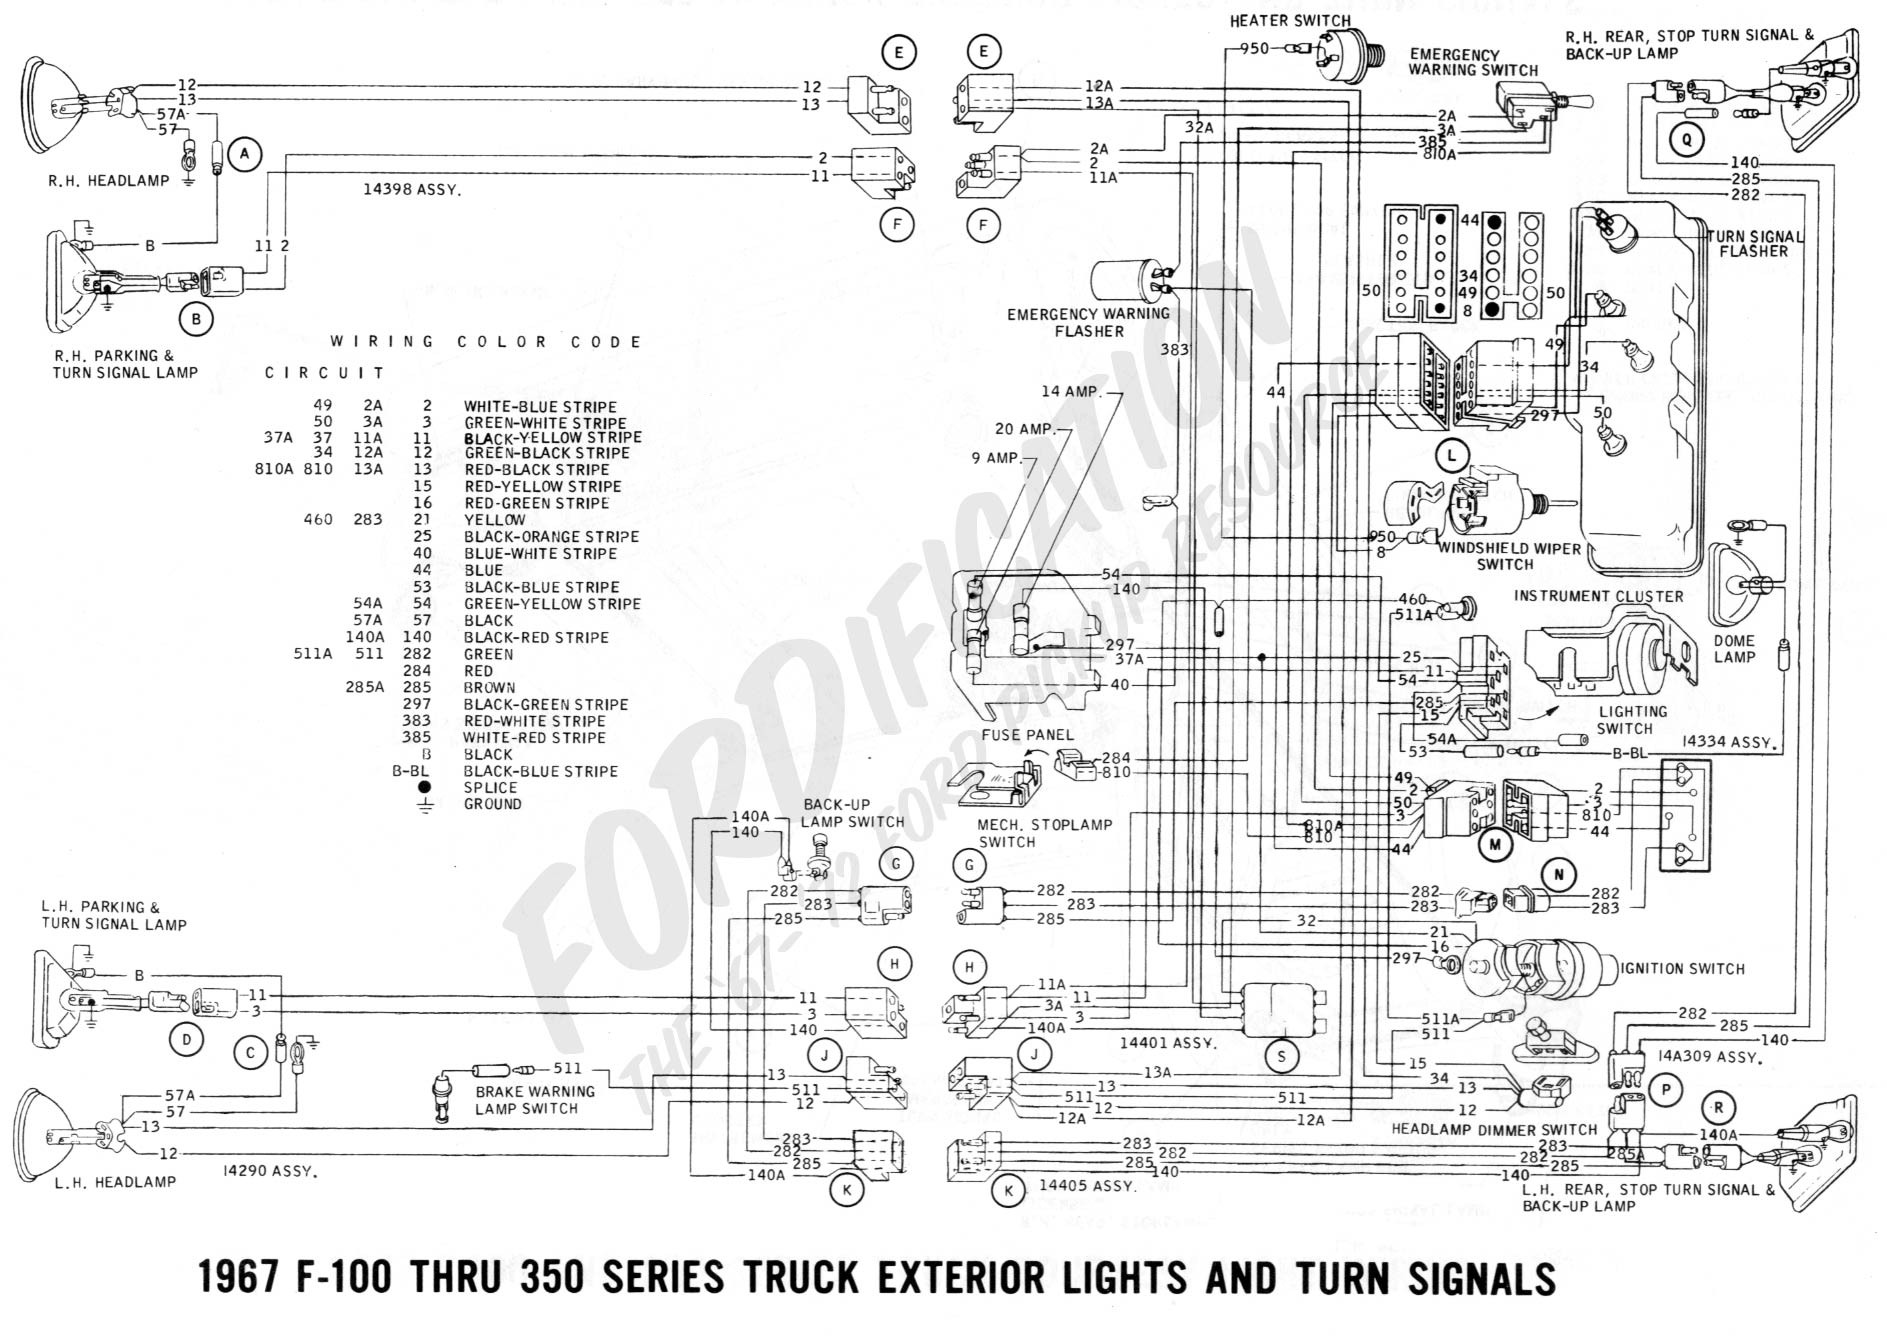 1956 ford f100 turn signal wiring diagram ctci gil39s garage wire rh abetter pw 1956 ford f100 ignition switch wiring diagram 1956 ford truck headlight switch wiring diagram